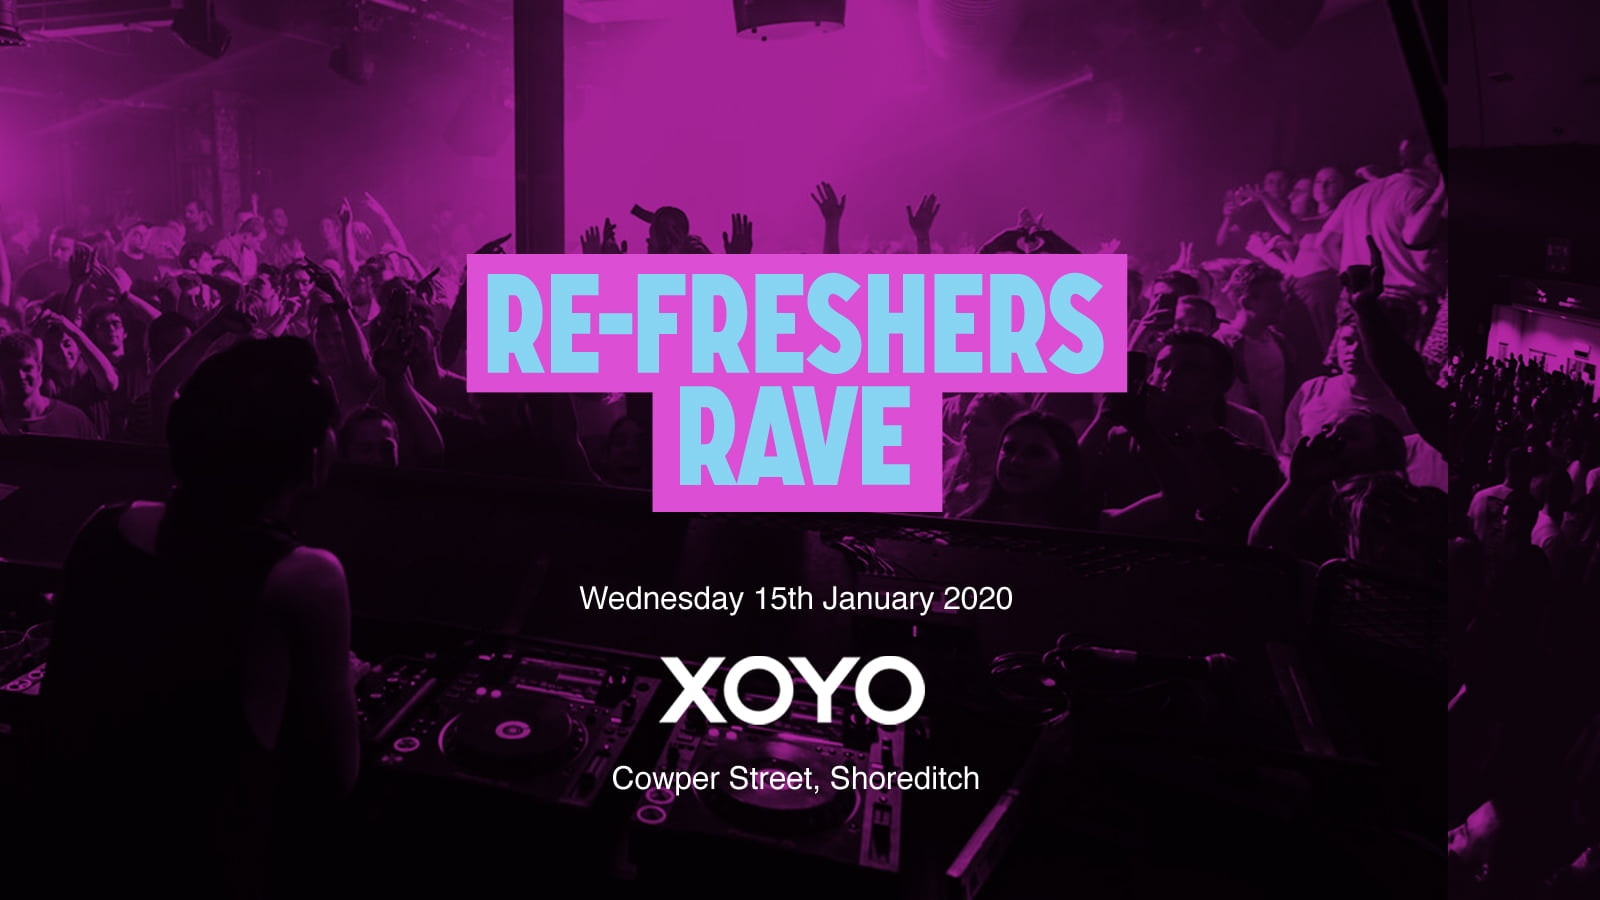 The Re-Freshers Rave 2020 at XOYO